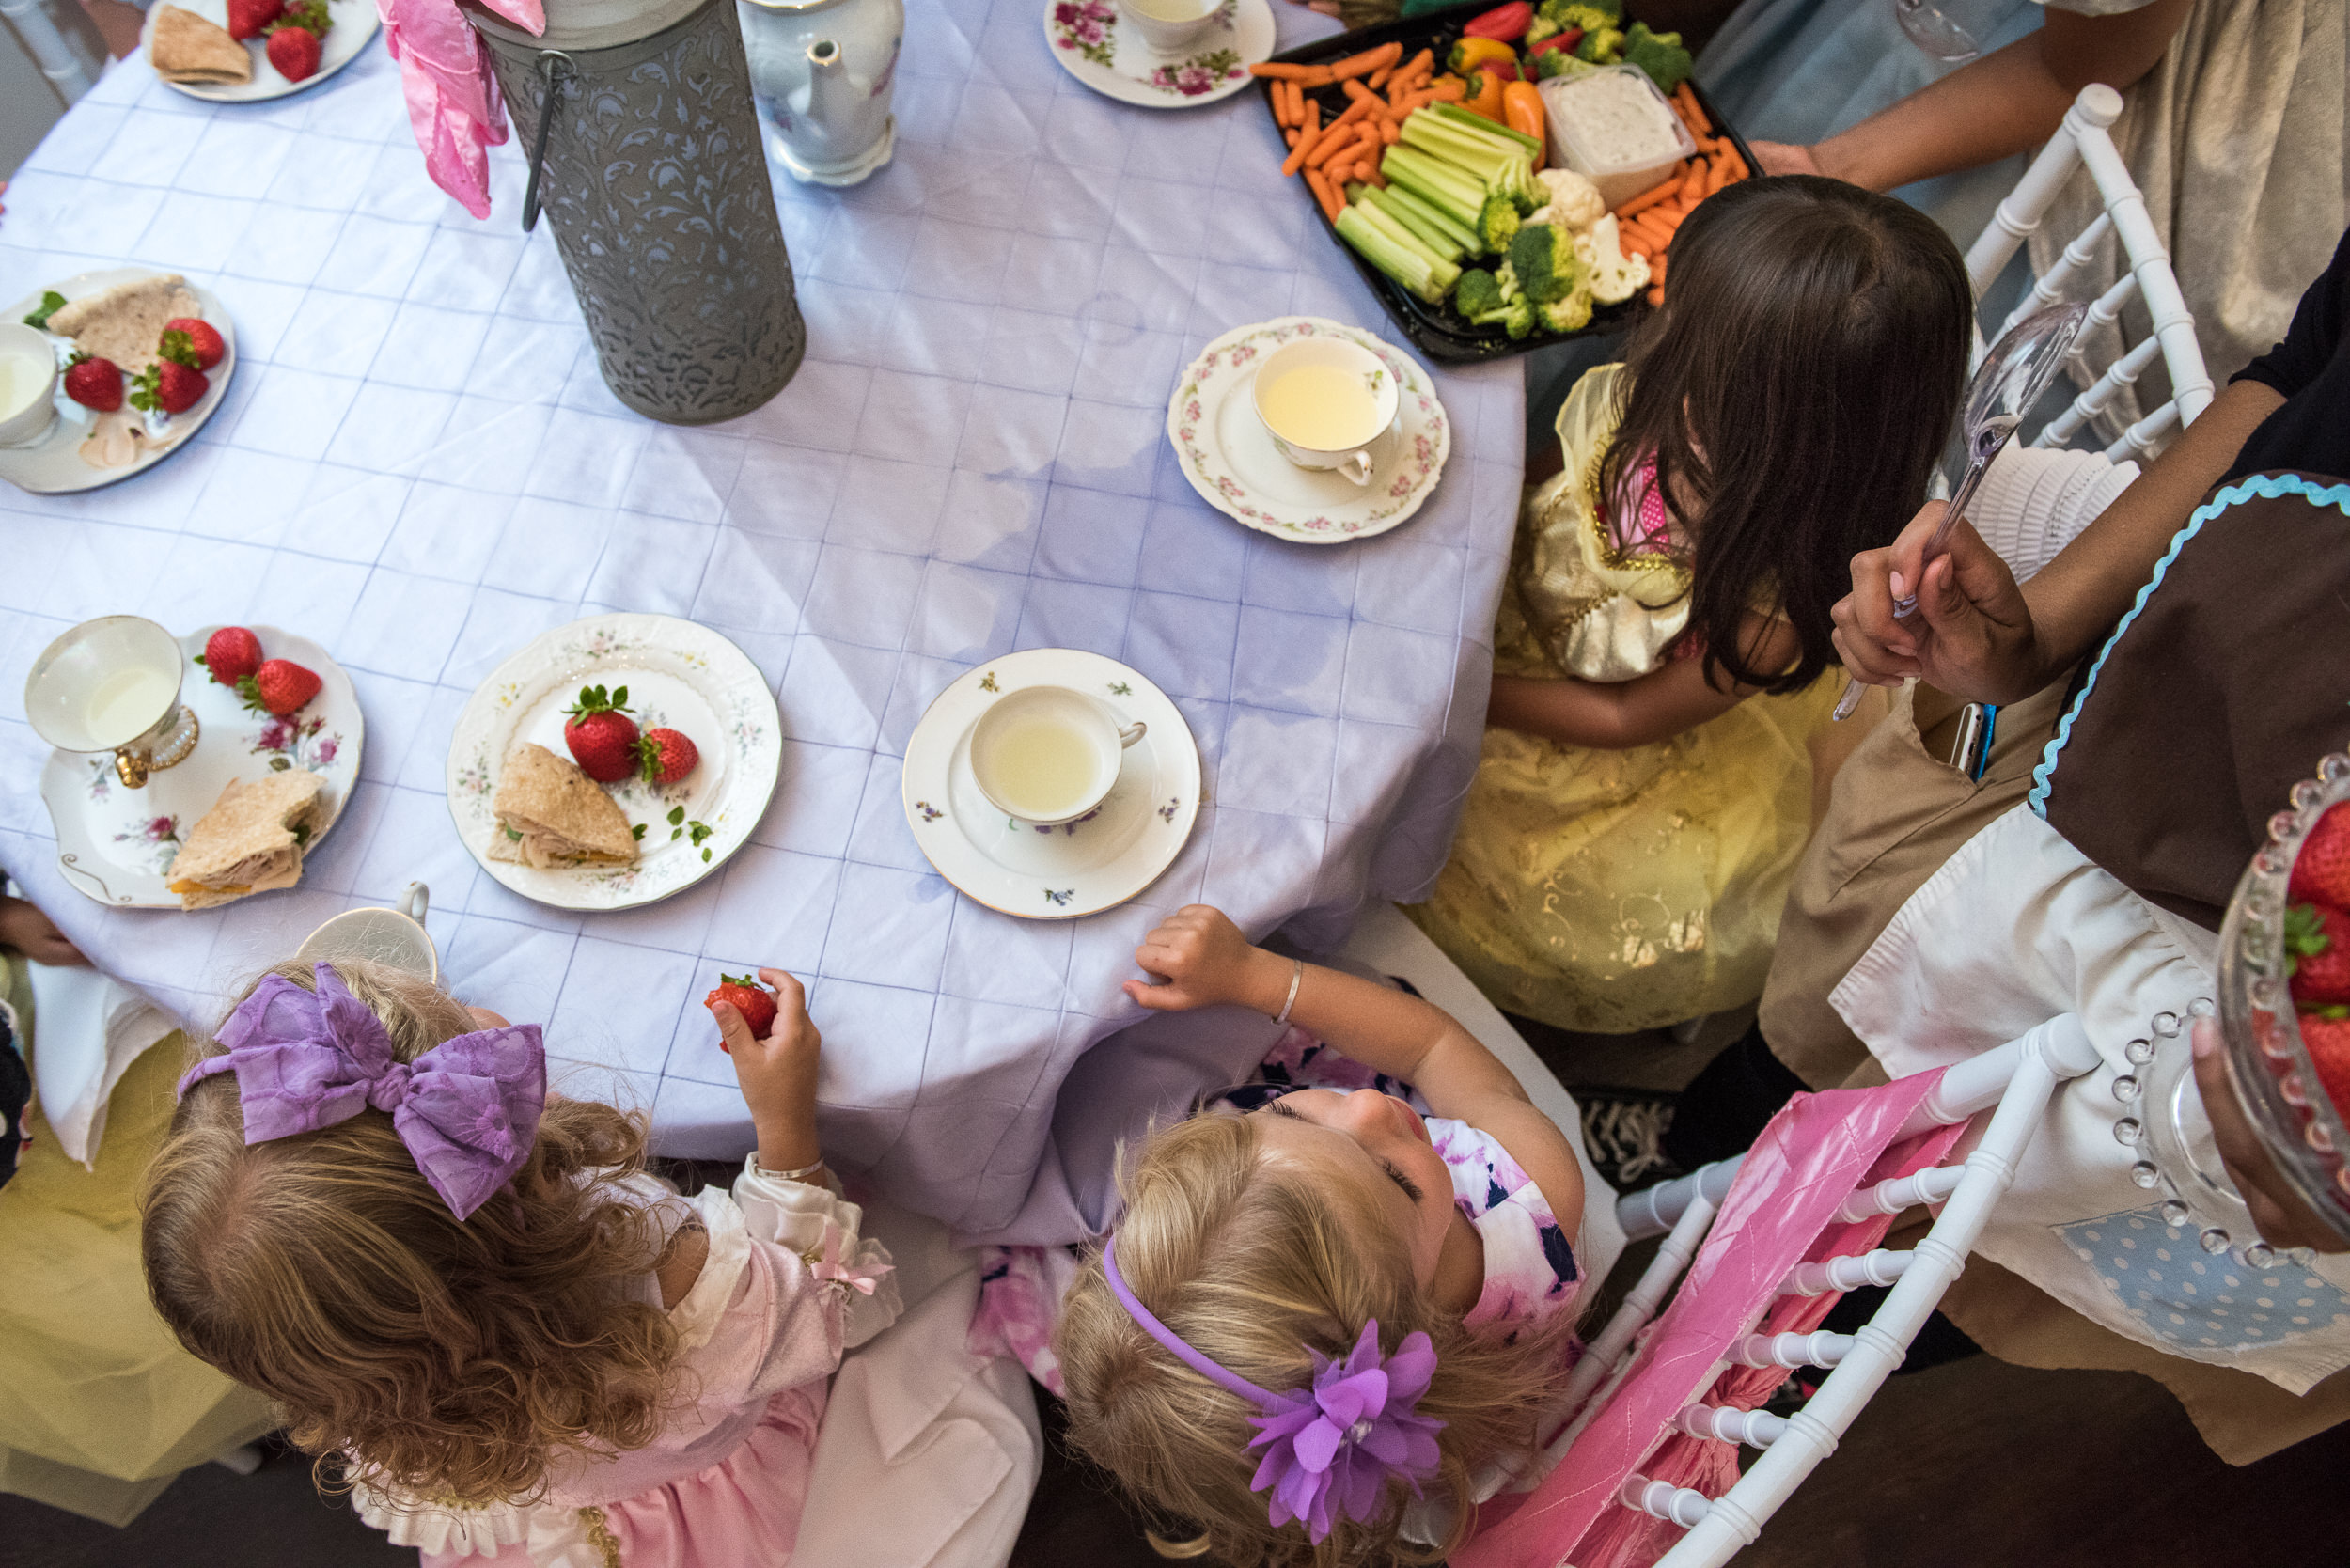 Molly Rees Photo - Documentary Family Photography in Denver, Colorado - birthday party girls princess tea party at Wands and Wishes Occasions by M. Menschel